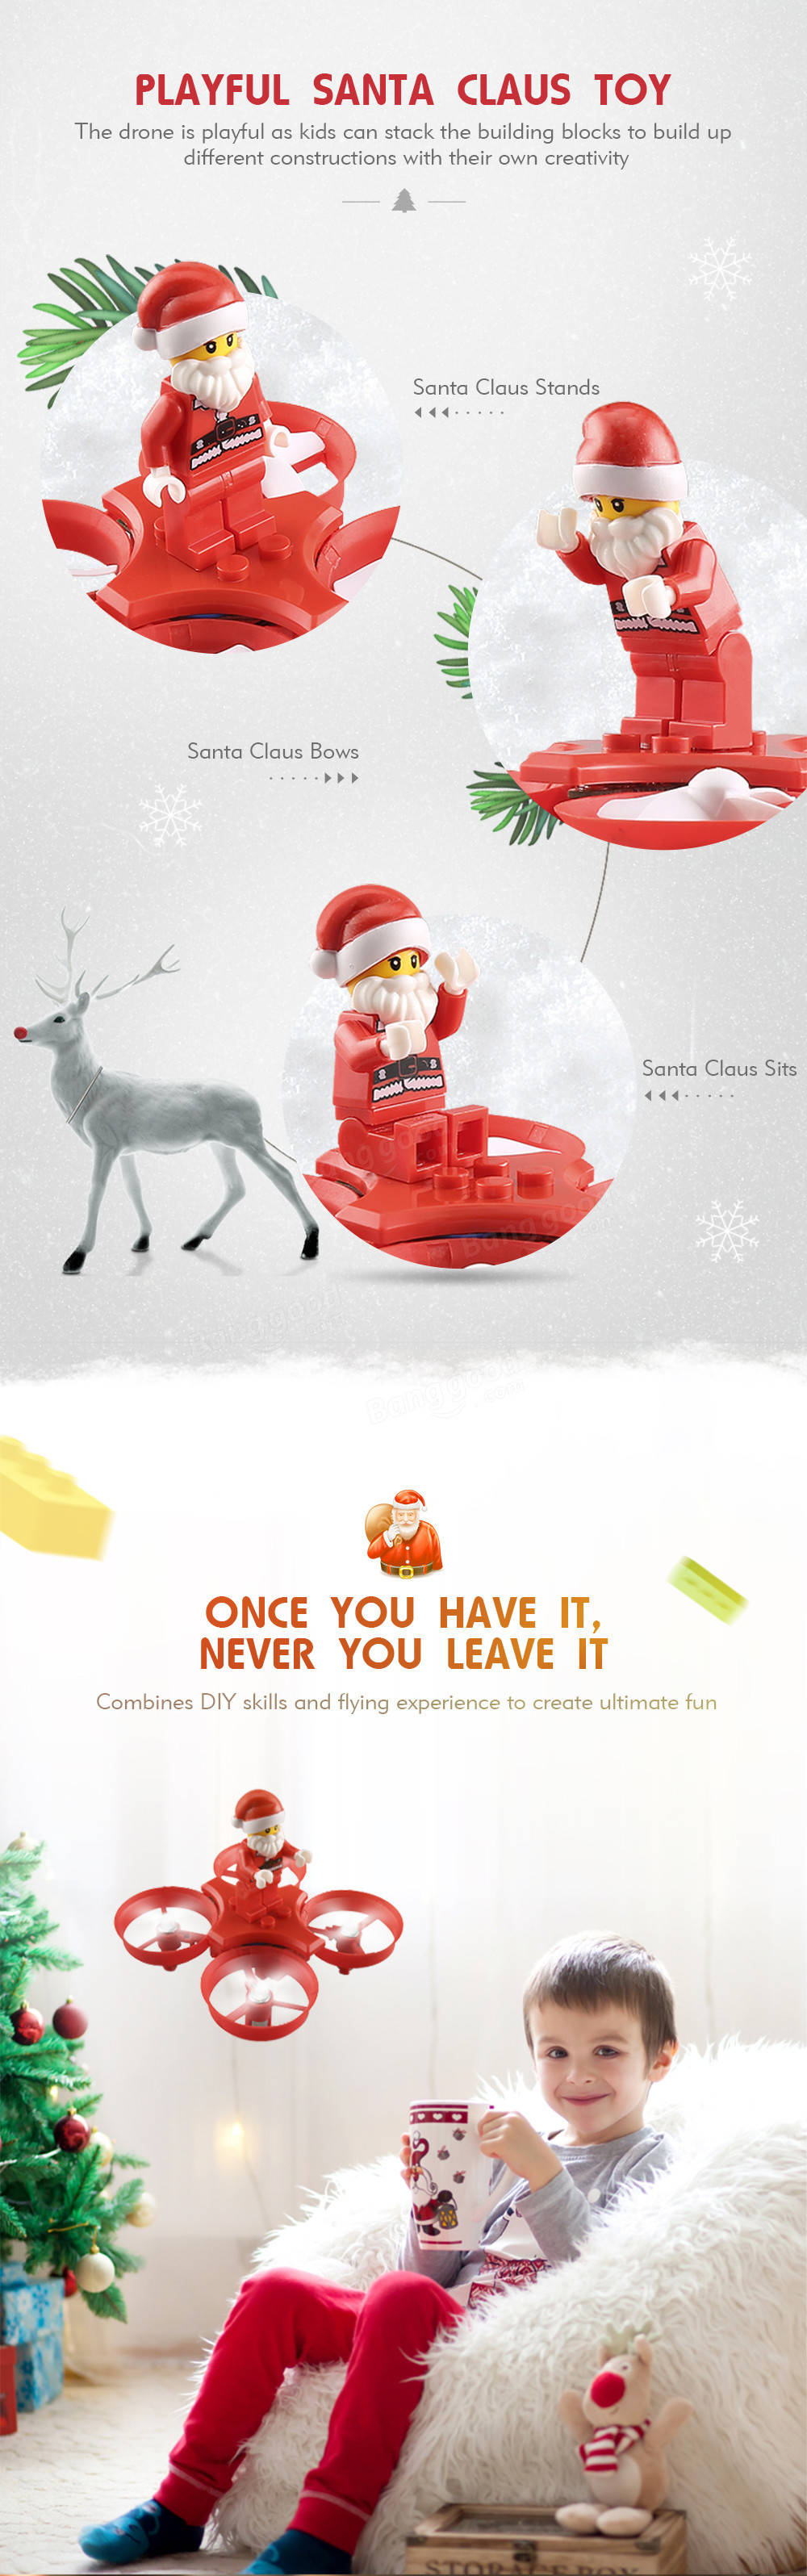 eachine e011c flying santa claus with christmas songs 716 motor